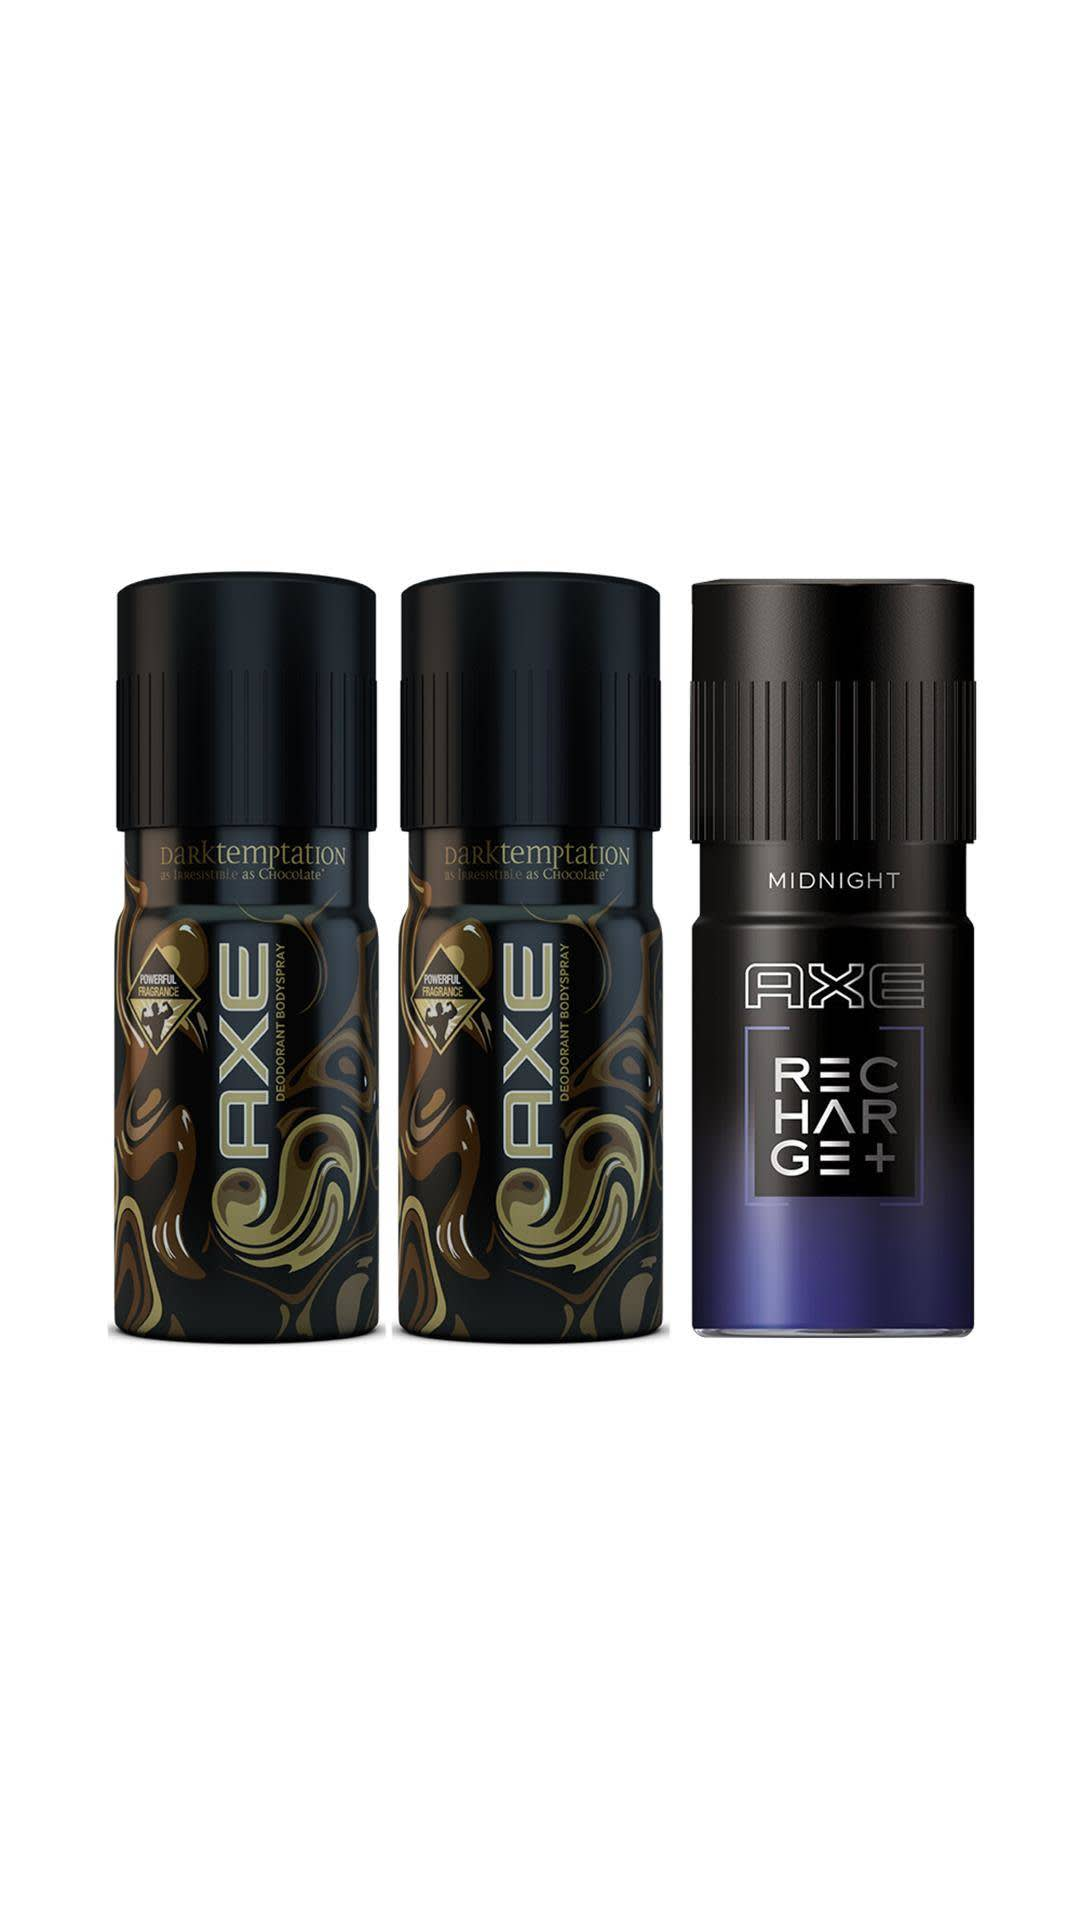 AXE Dark Temptation Deodorant 2 x 150 ml, Midnight Bodyspray 150 ml (Pack of 3)